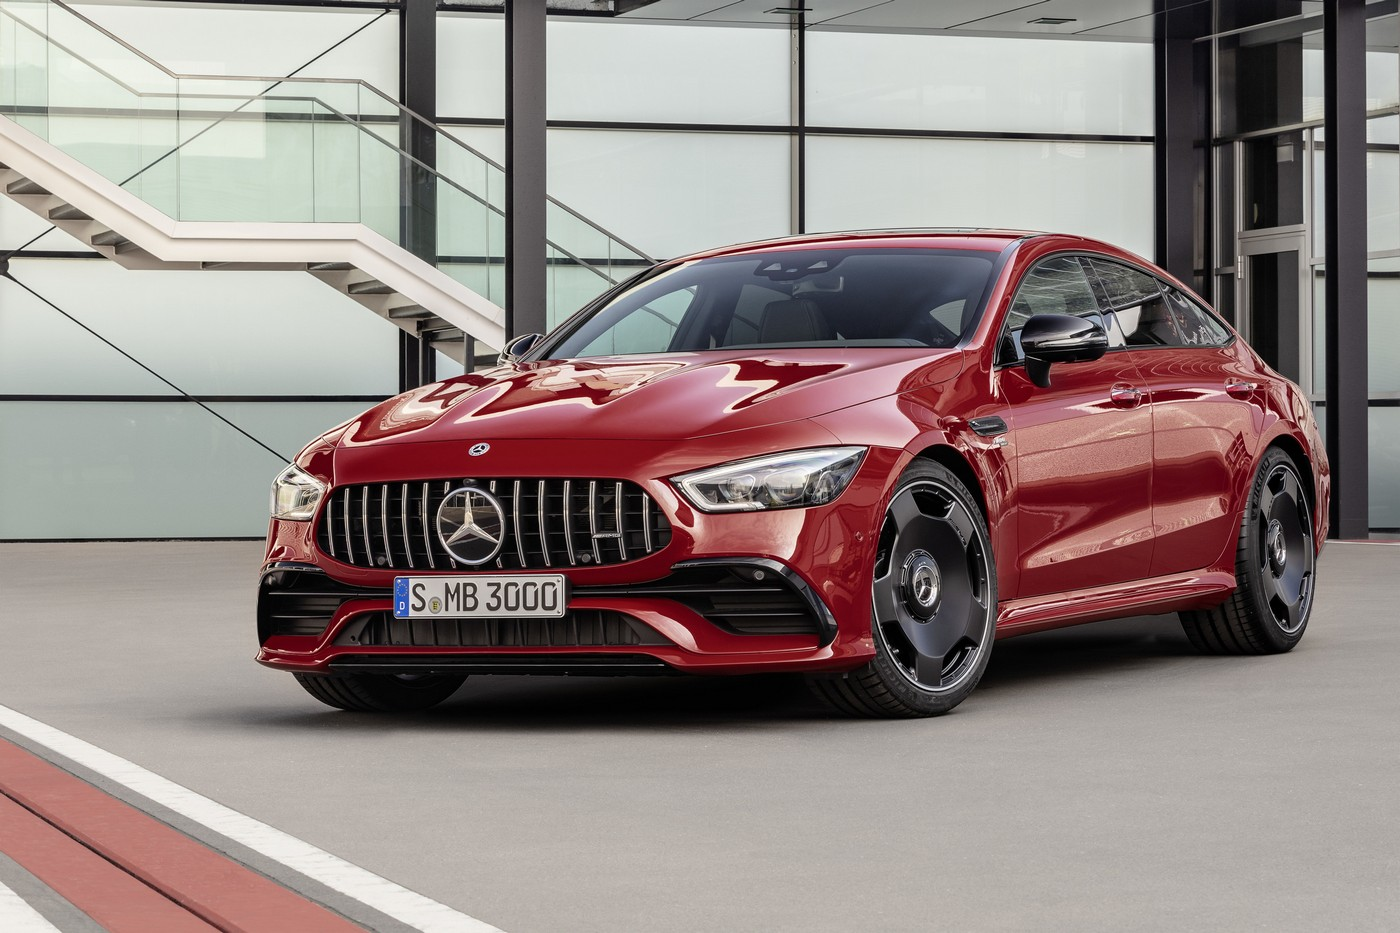 mercedes amg has expanded gt 4 door coupe range with a new entry level gt 43. Black Bedroom Furniture Sets. Home Design Ideas